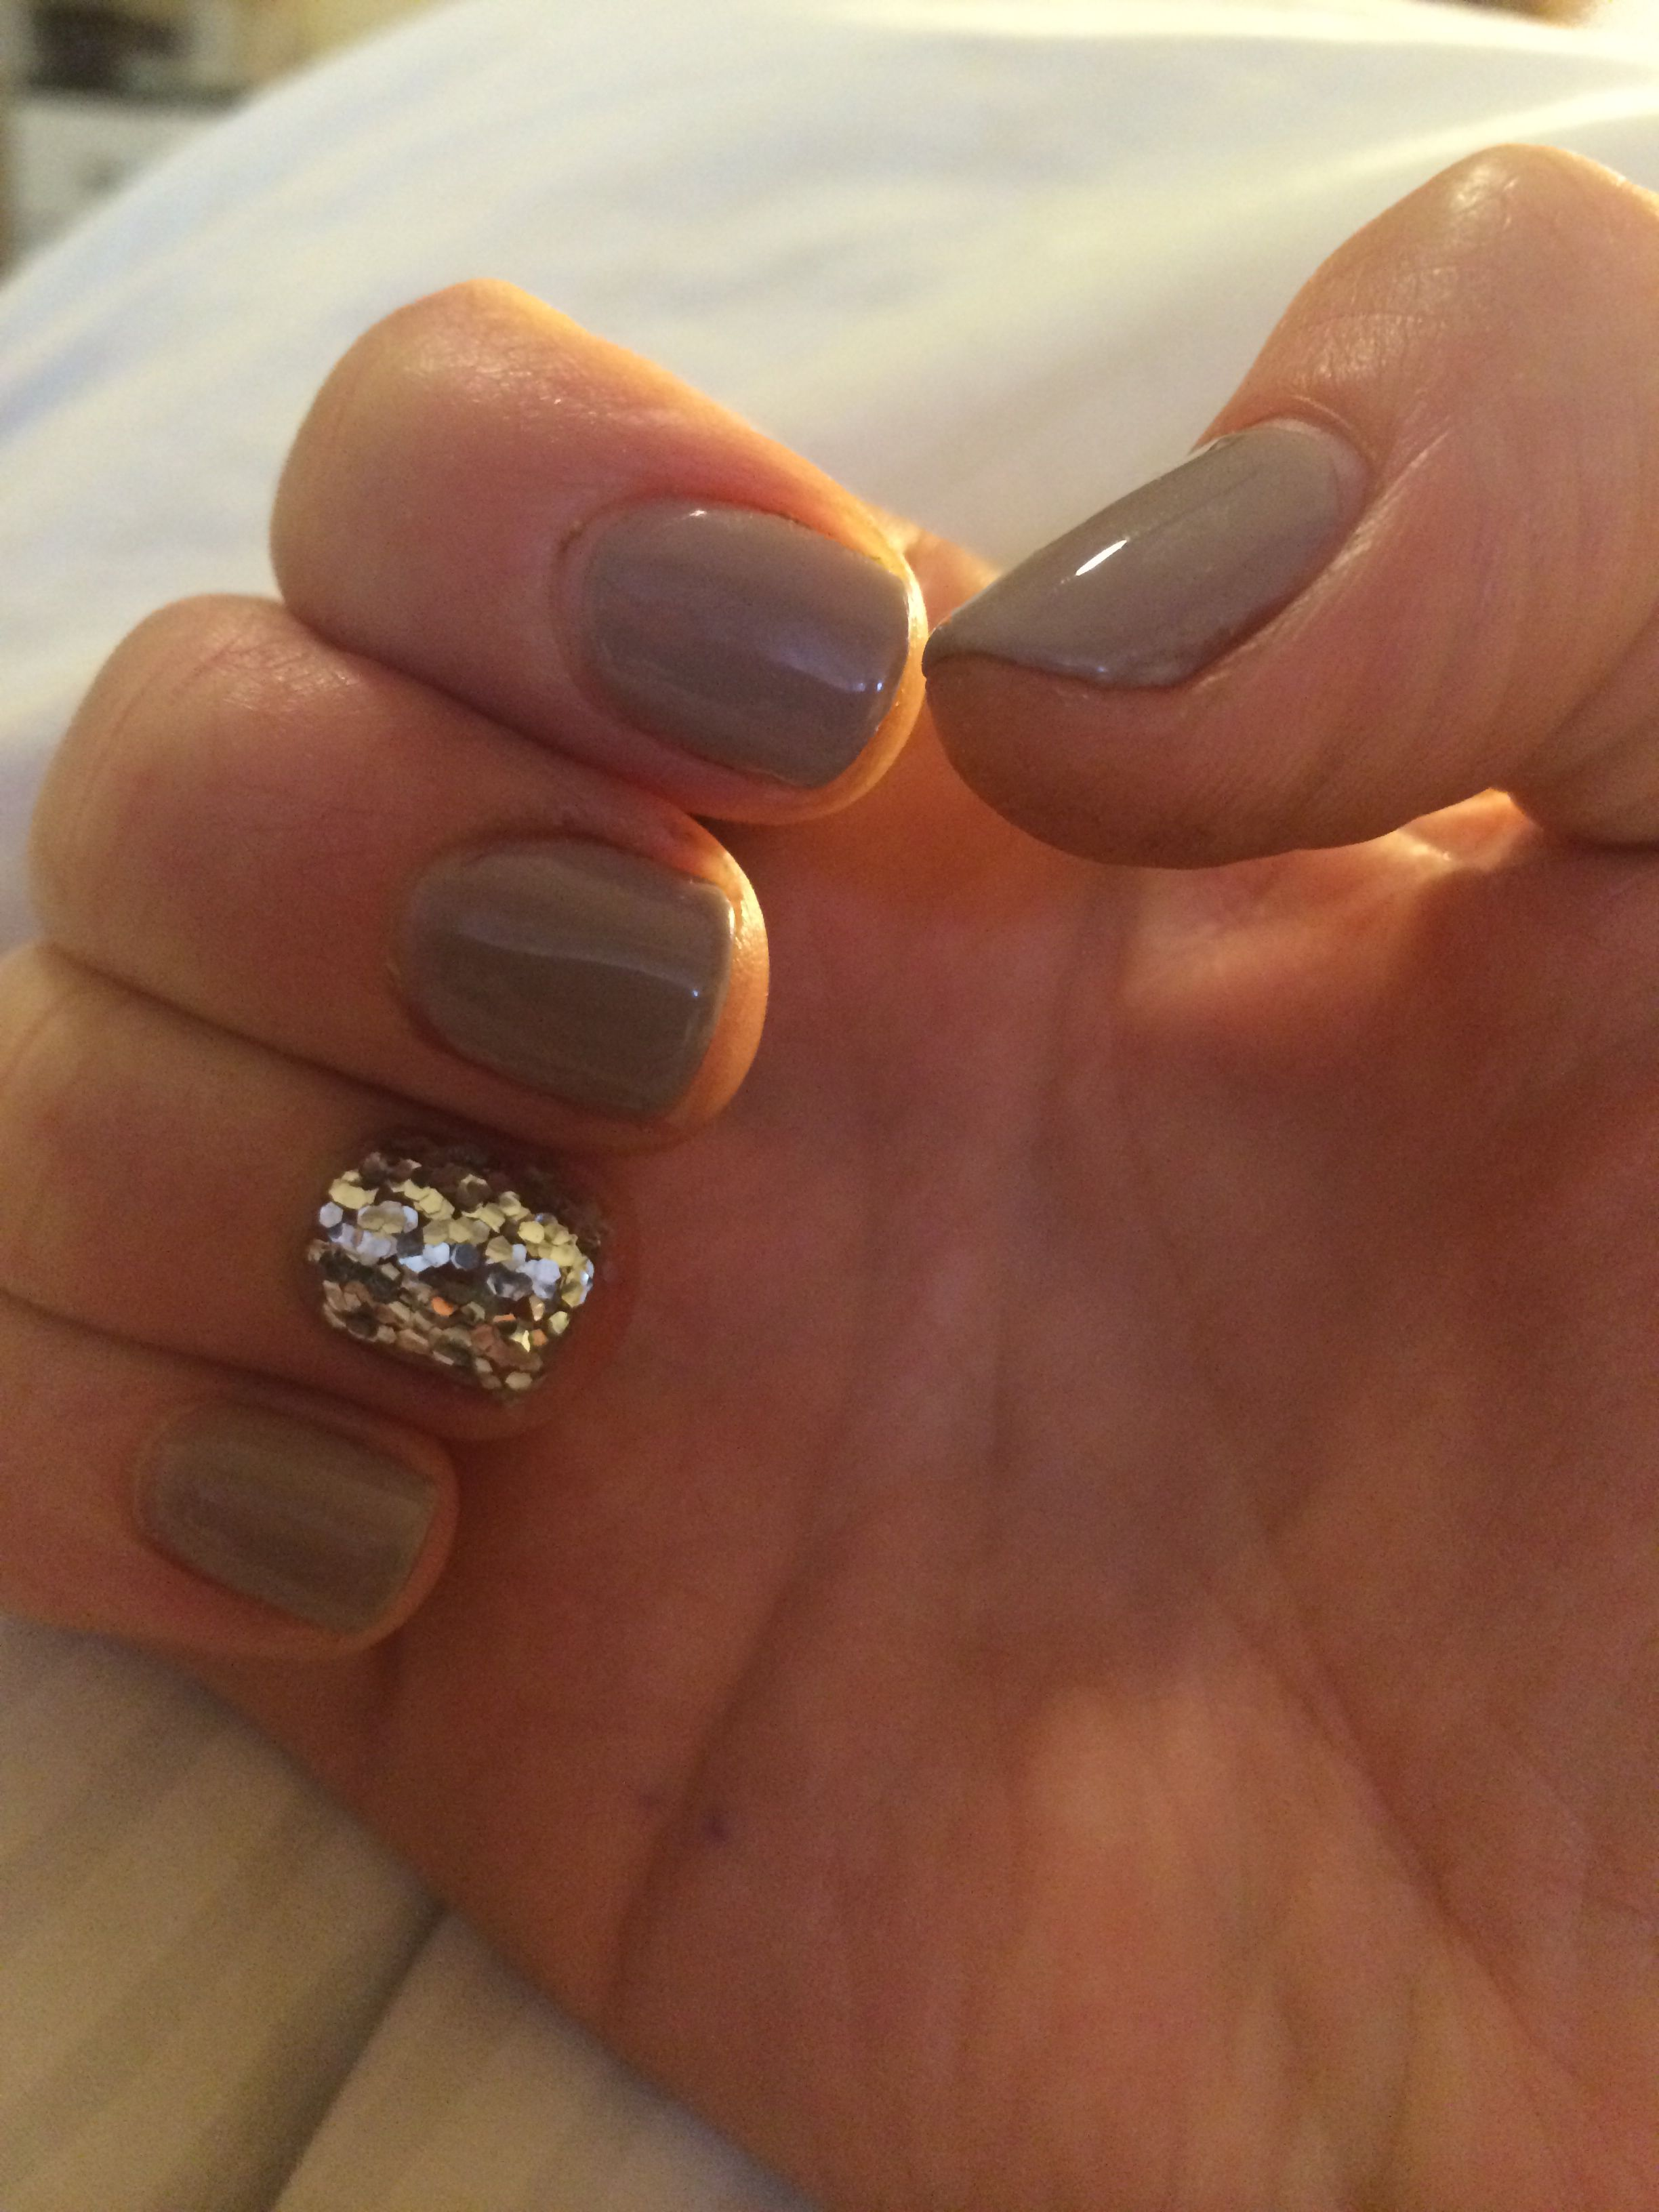 nails gel sparkly bling neutral